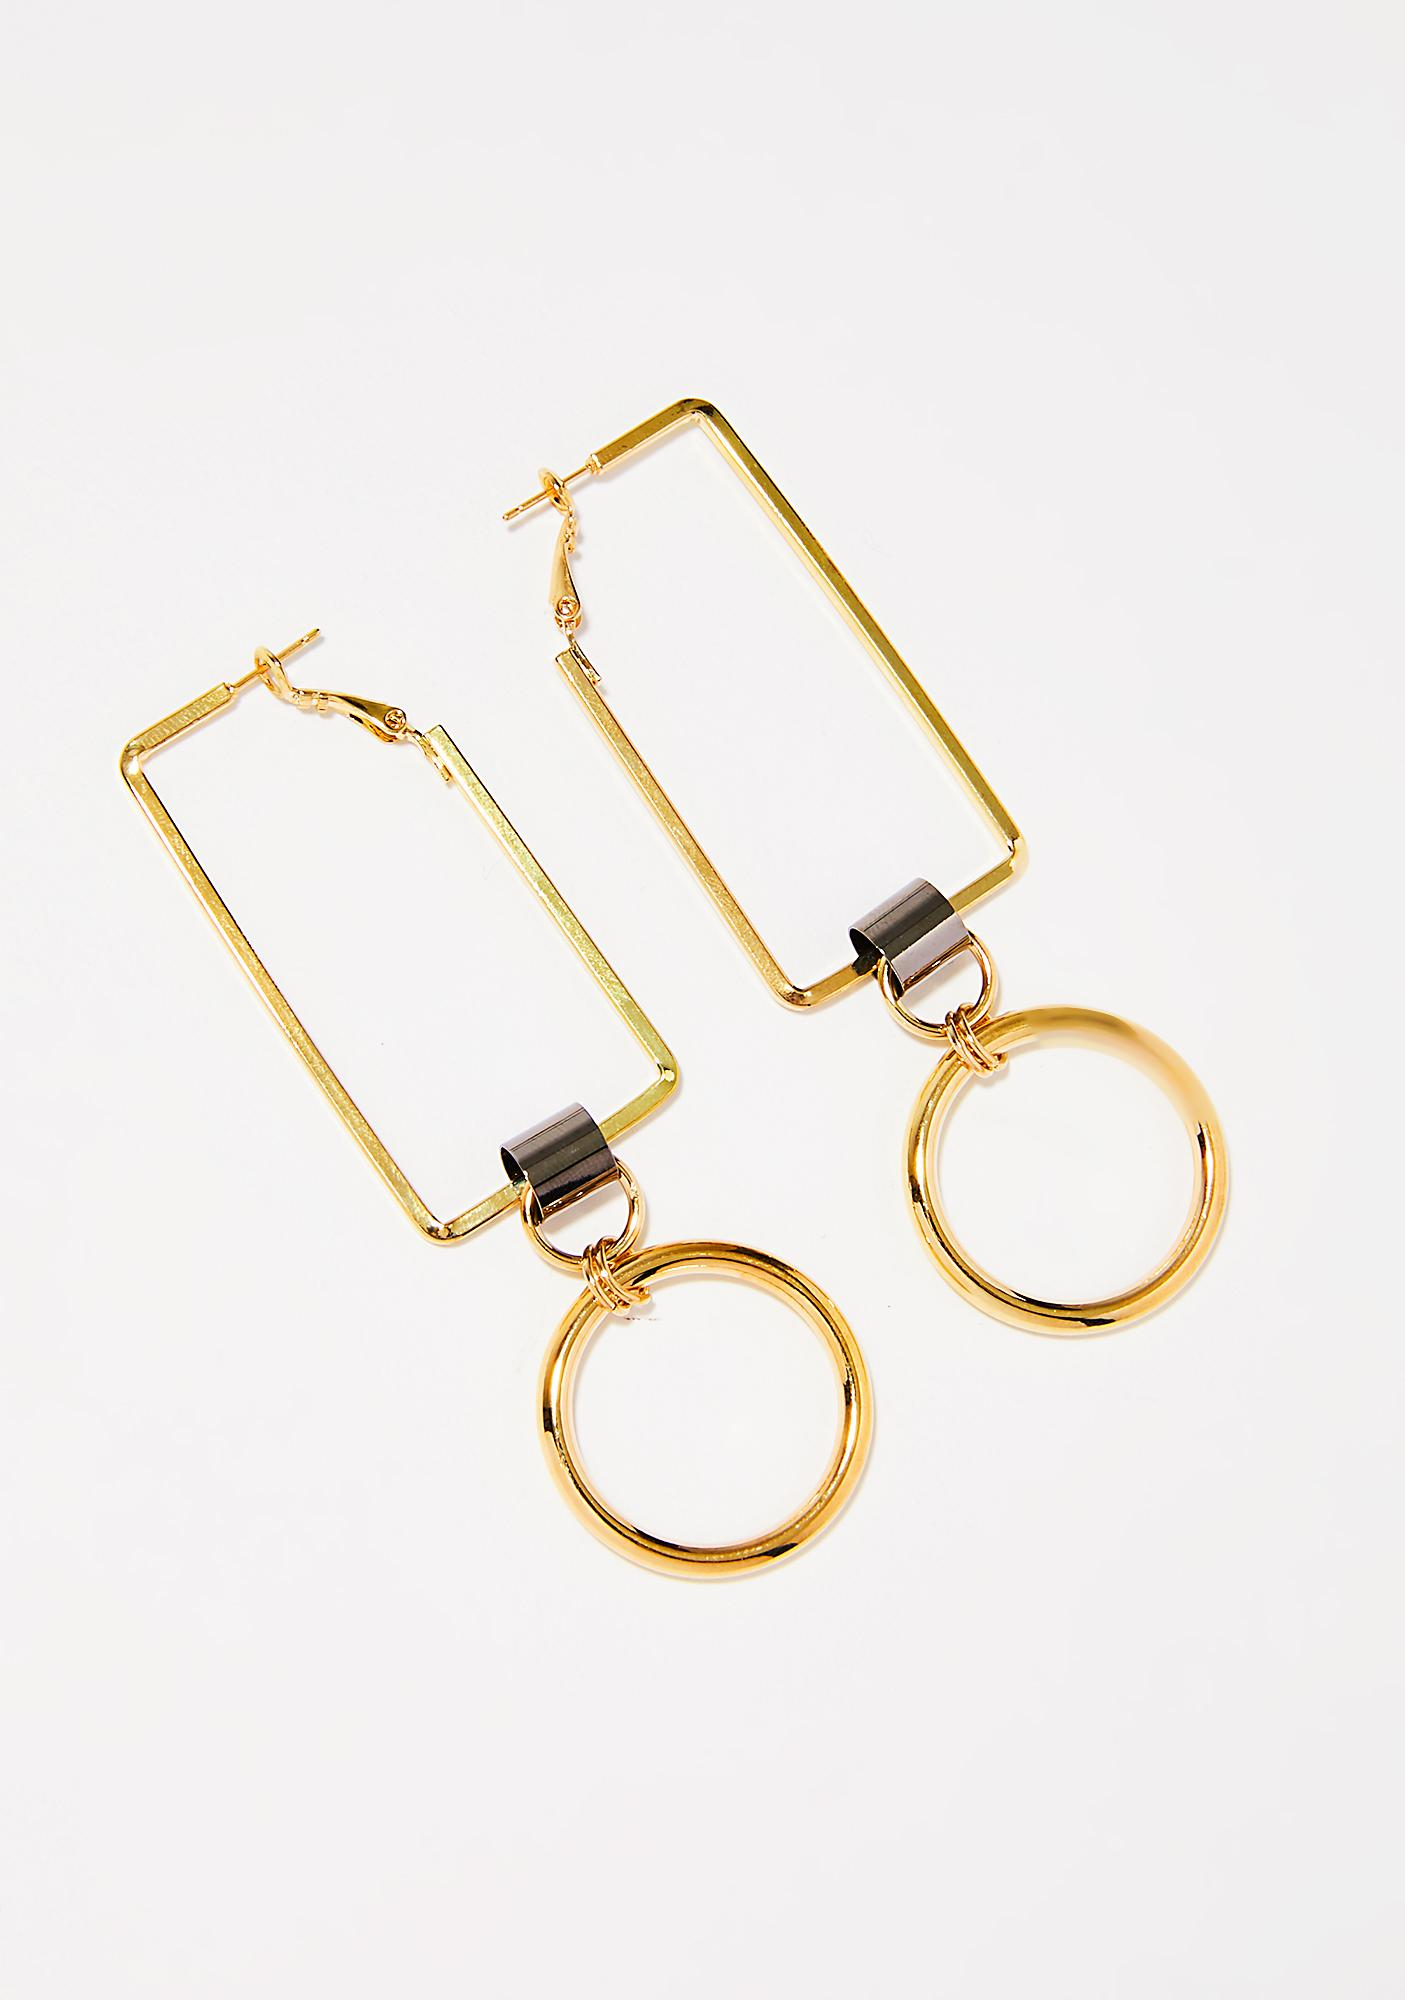 Golden Ratio Geometric Earrings